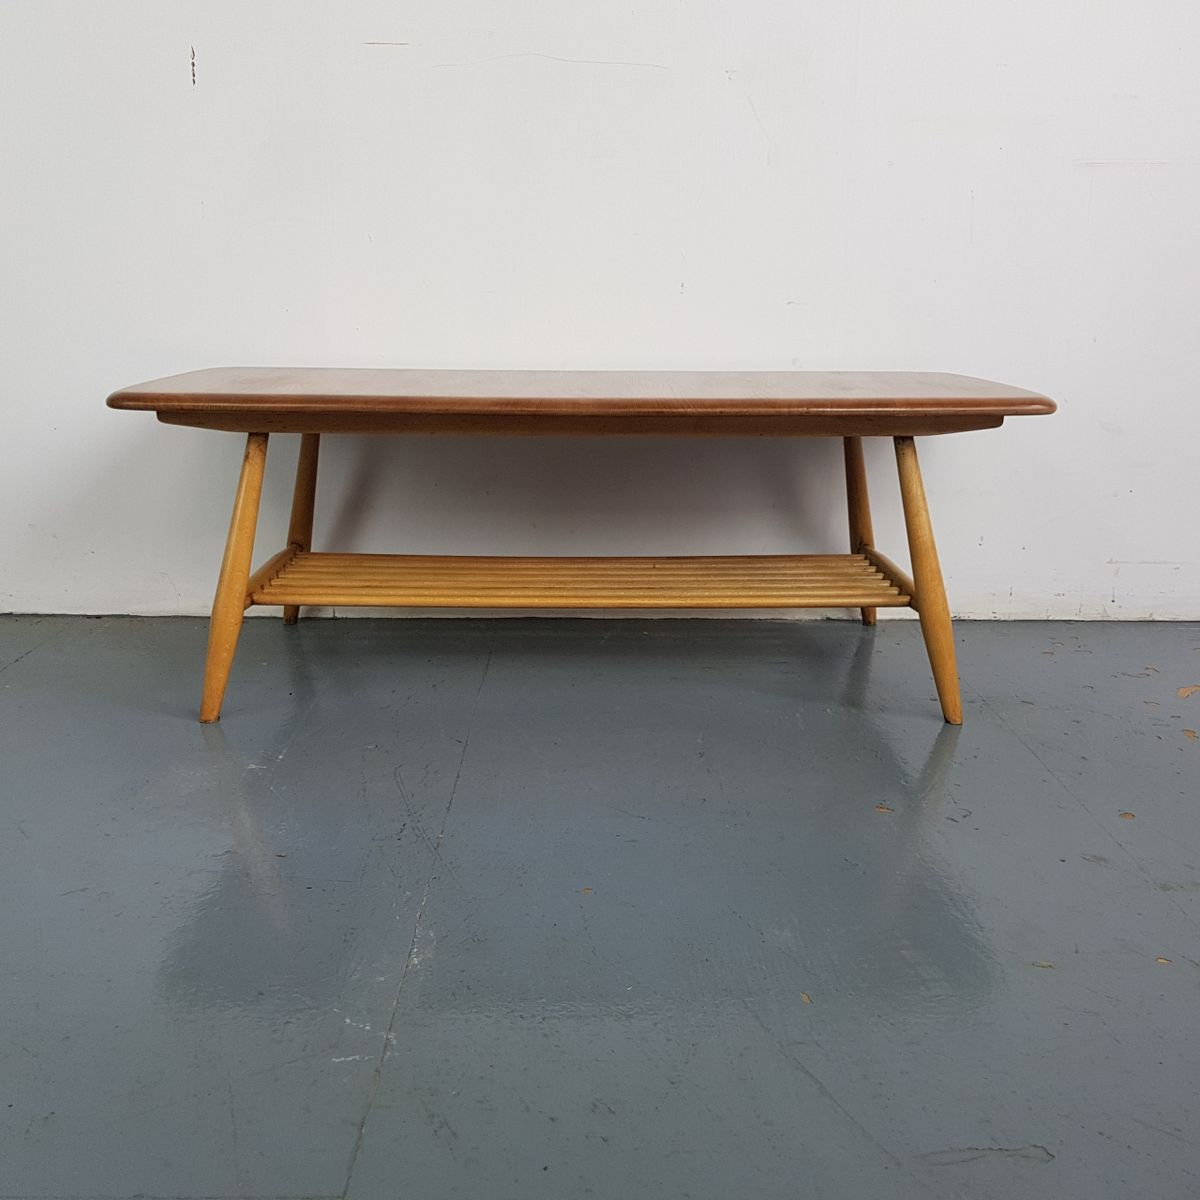 Vintage Beech Coffee Table by Lucian Ercolani for Ercol for sale at